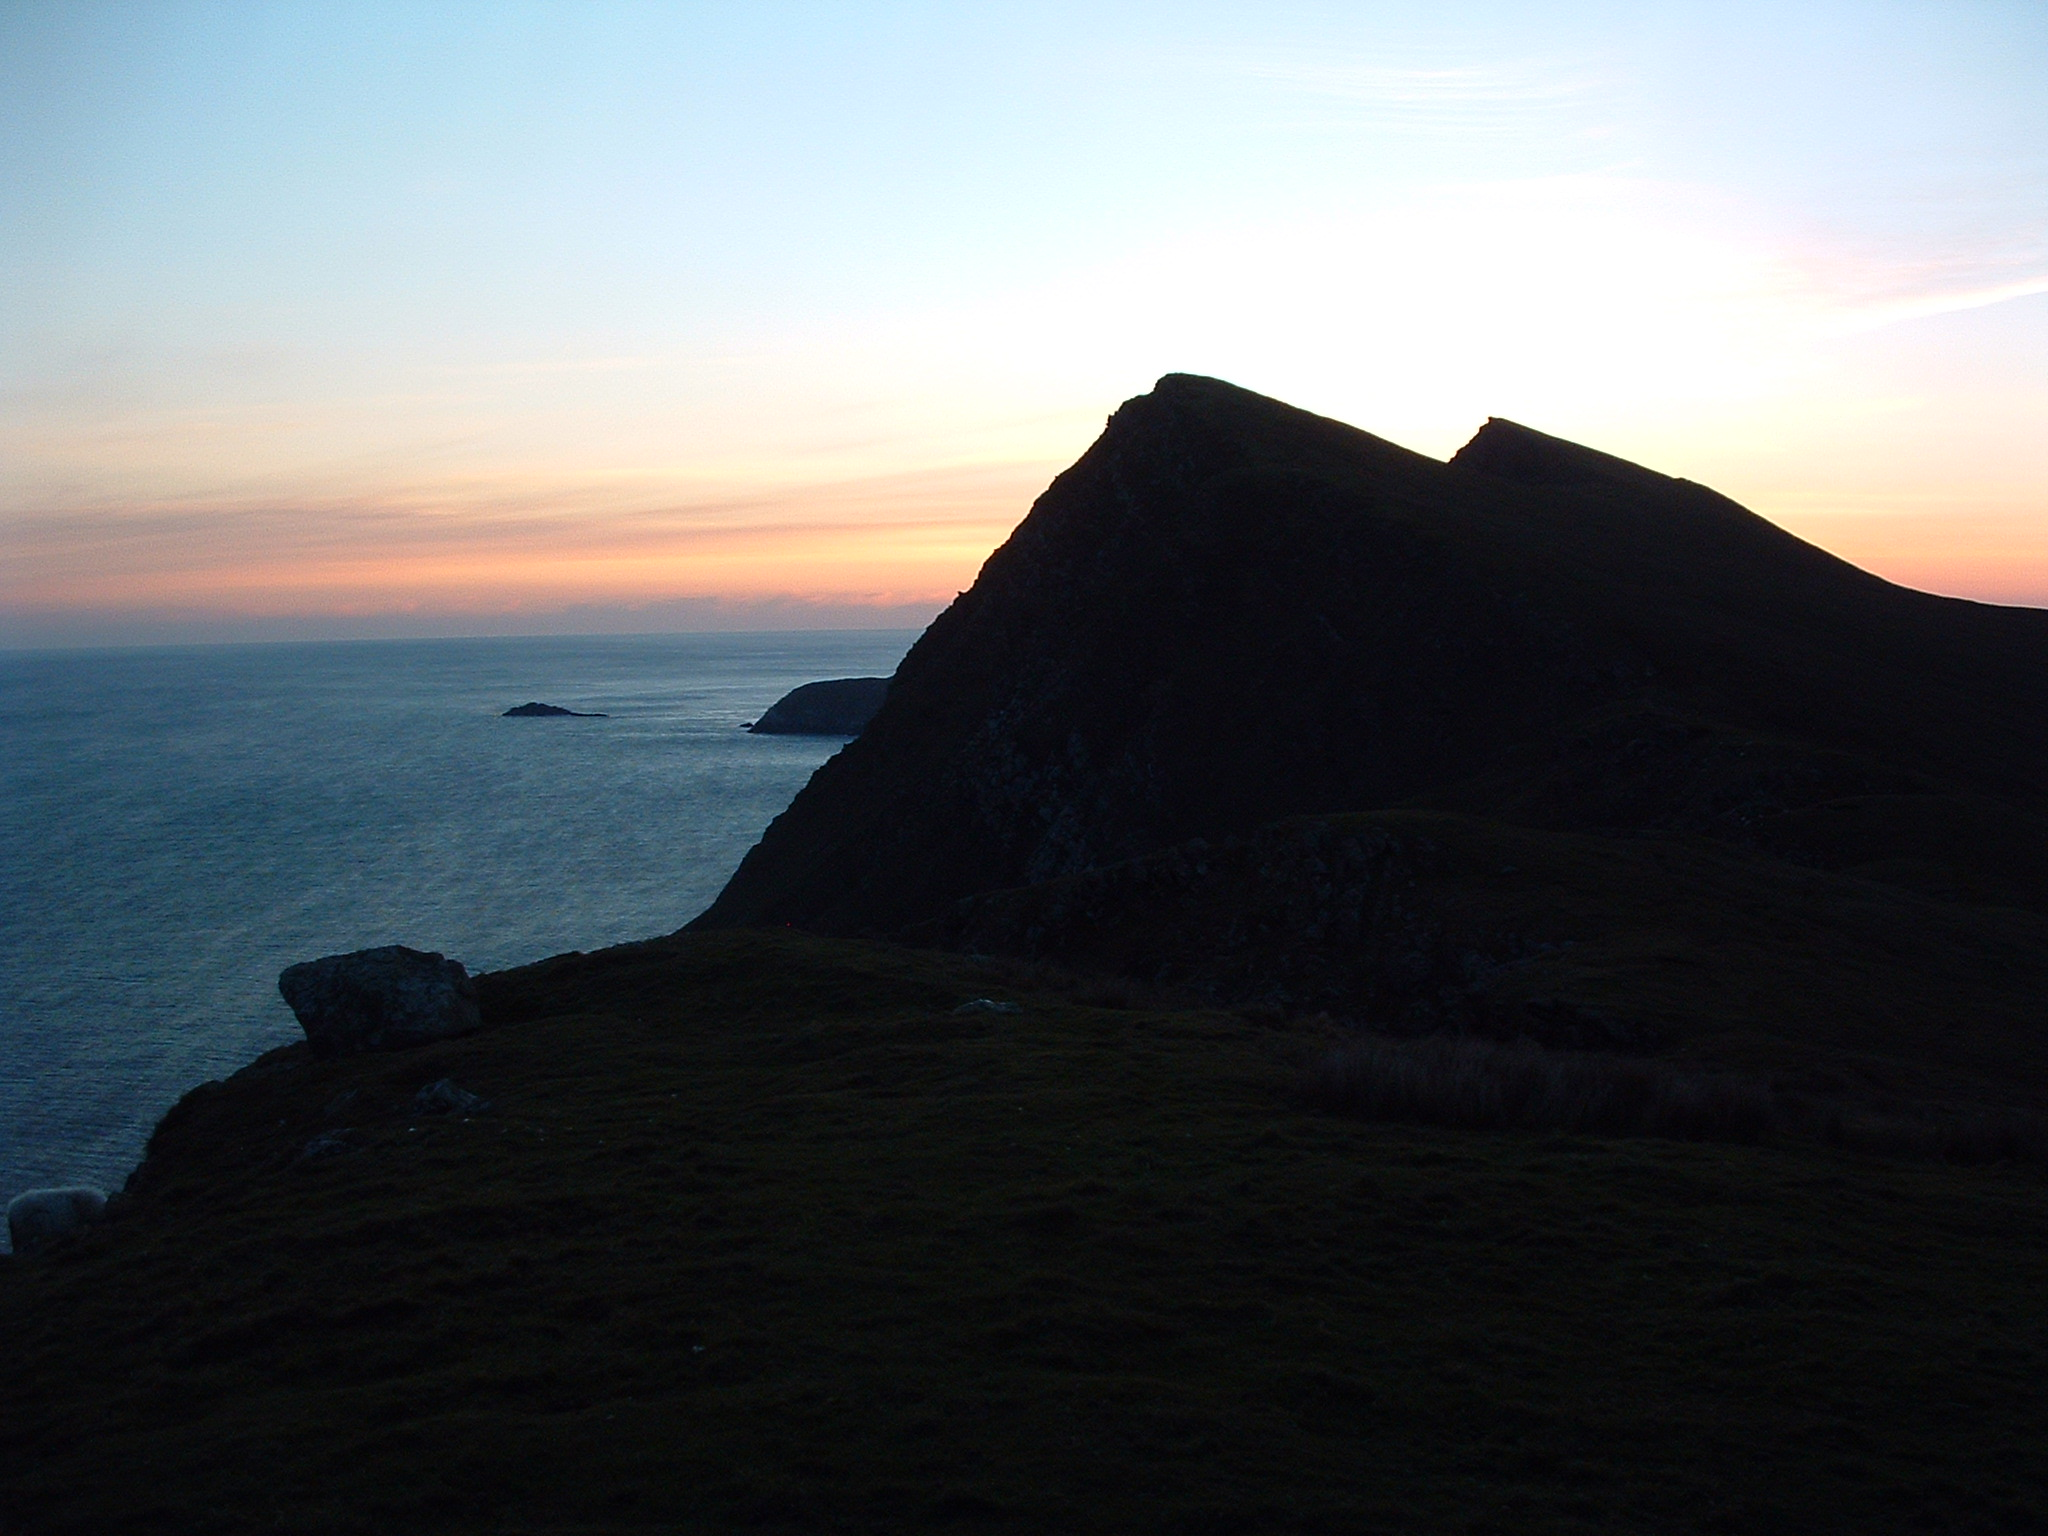 Moytoge Head Lookout Post, Keem Bay, Achill Island, Co. Mayo, Ireland